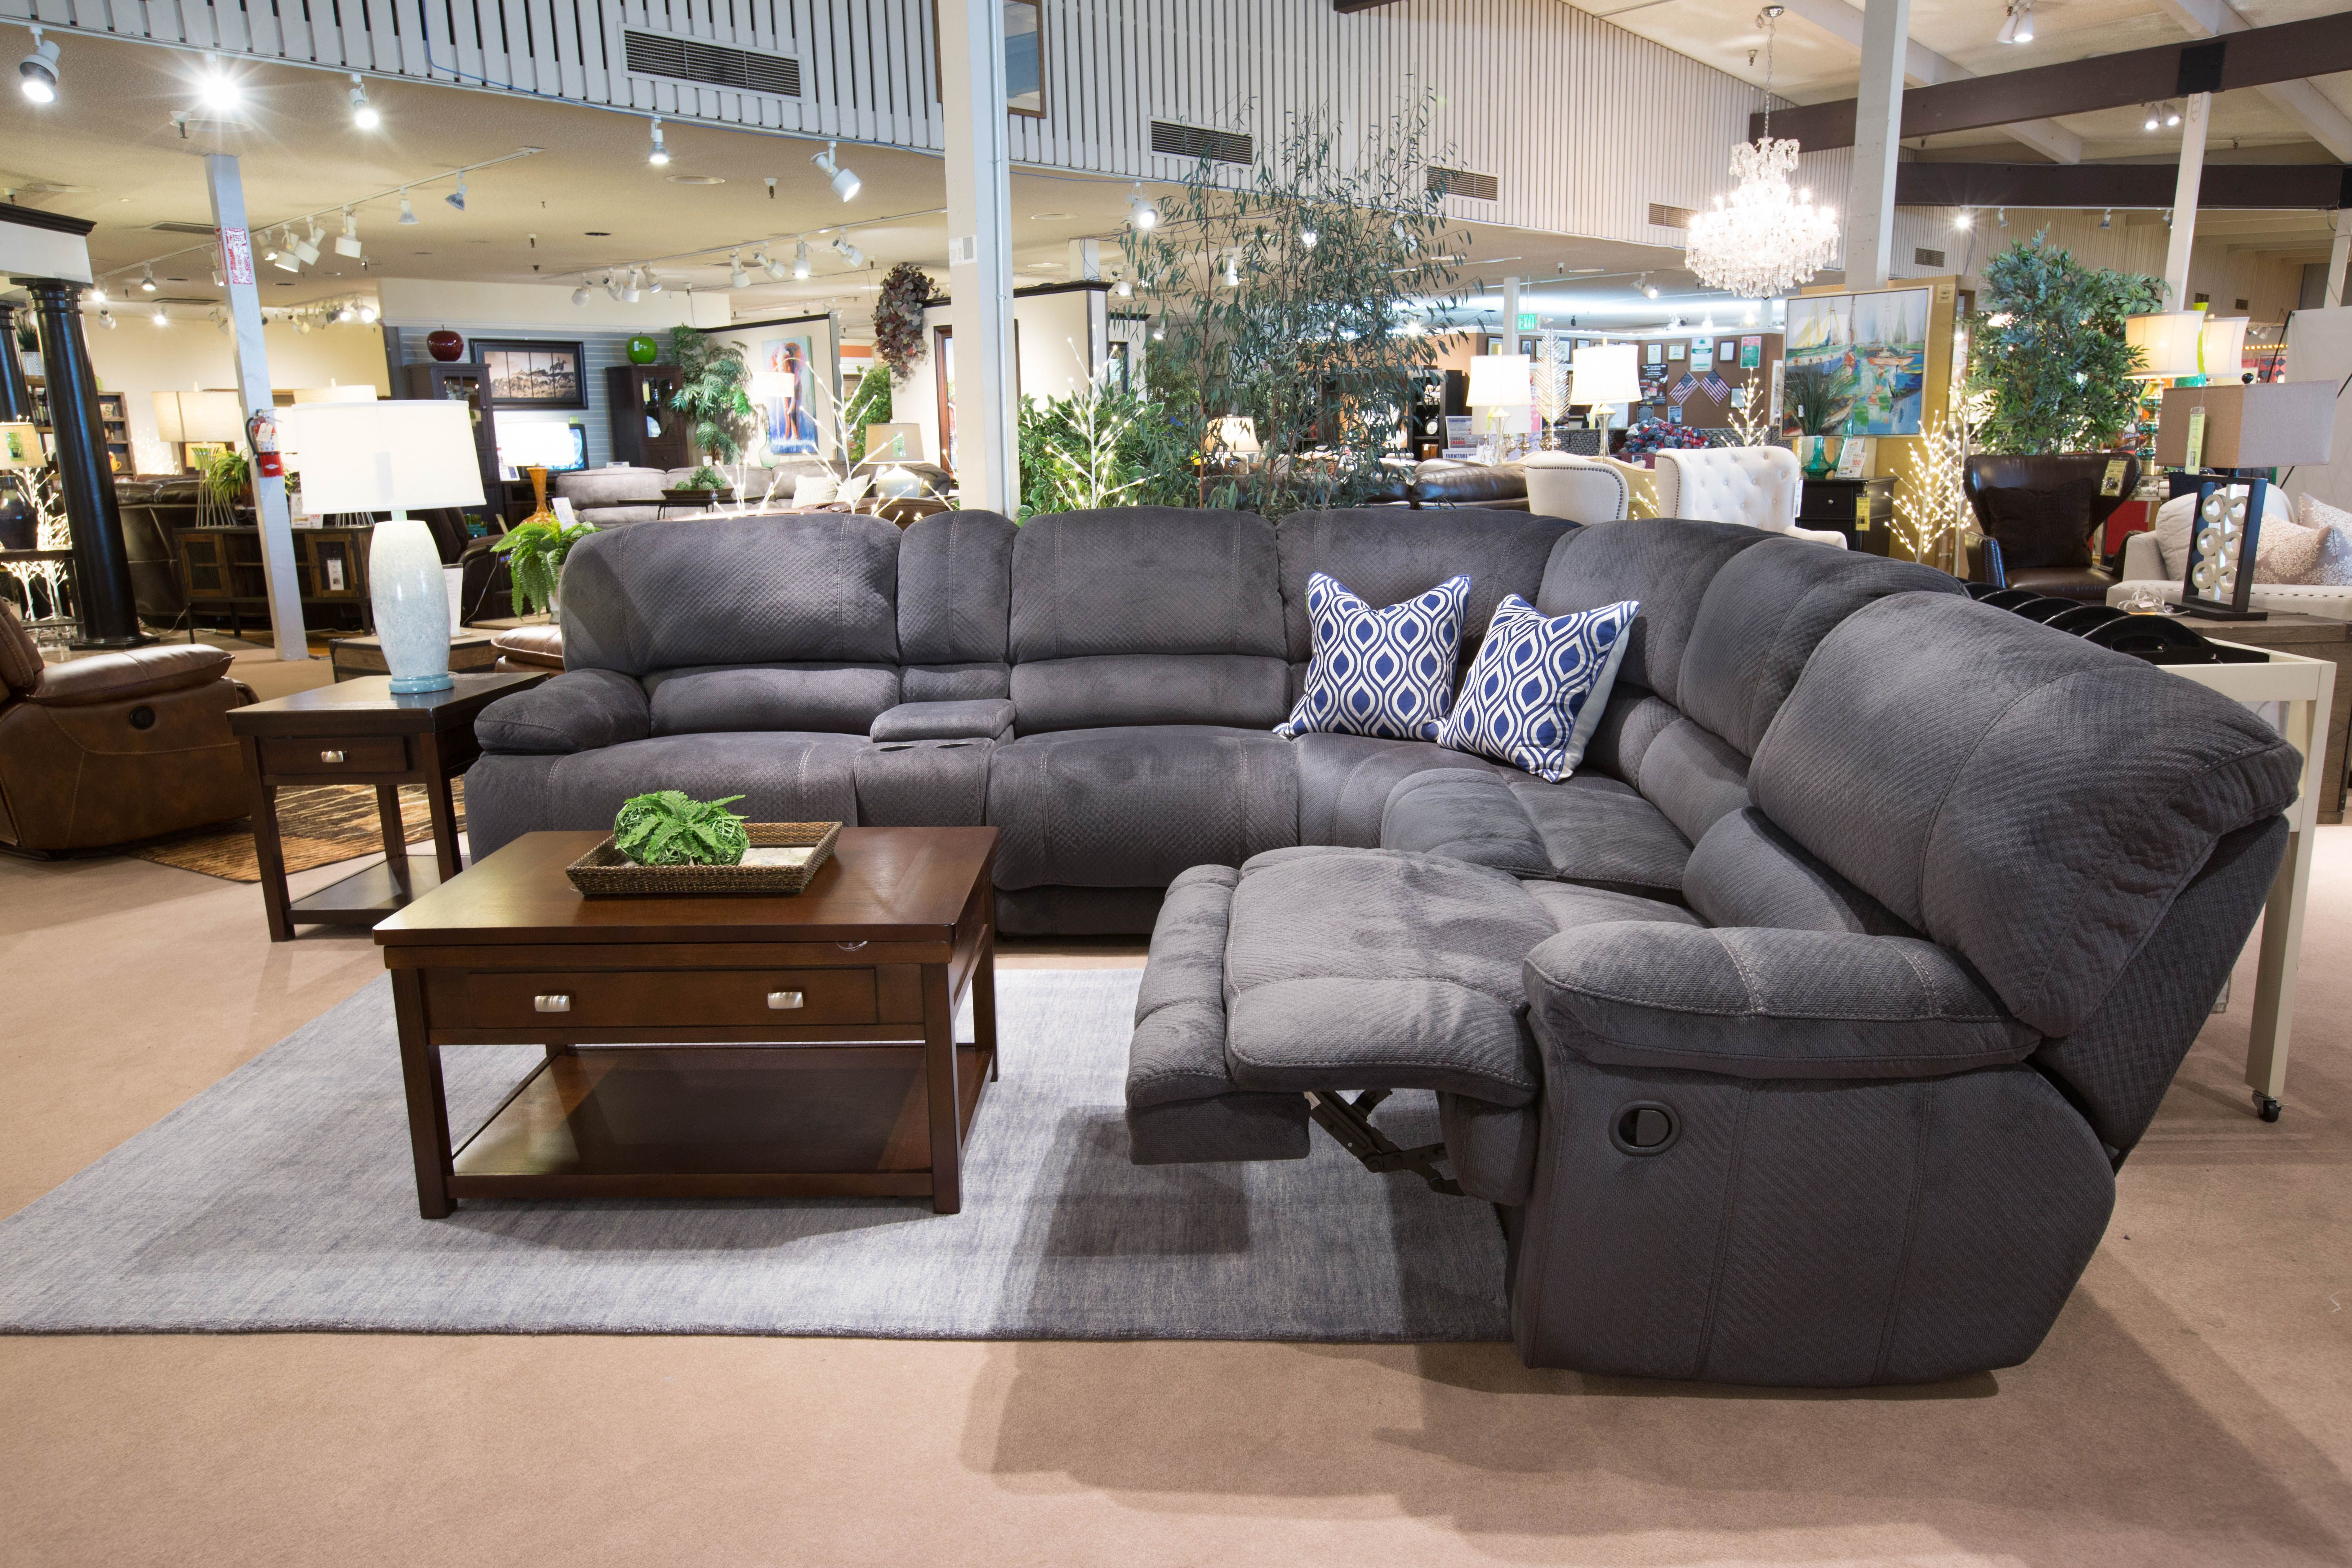 Kosovo Collection Plush Charcoal Chenille Fabric High Performance Upholstery The Kosovo Collection Features A In 2019 Sectional Sofa With Recliner Living Room Furniture Comfortable Couch